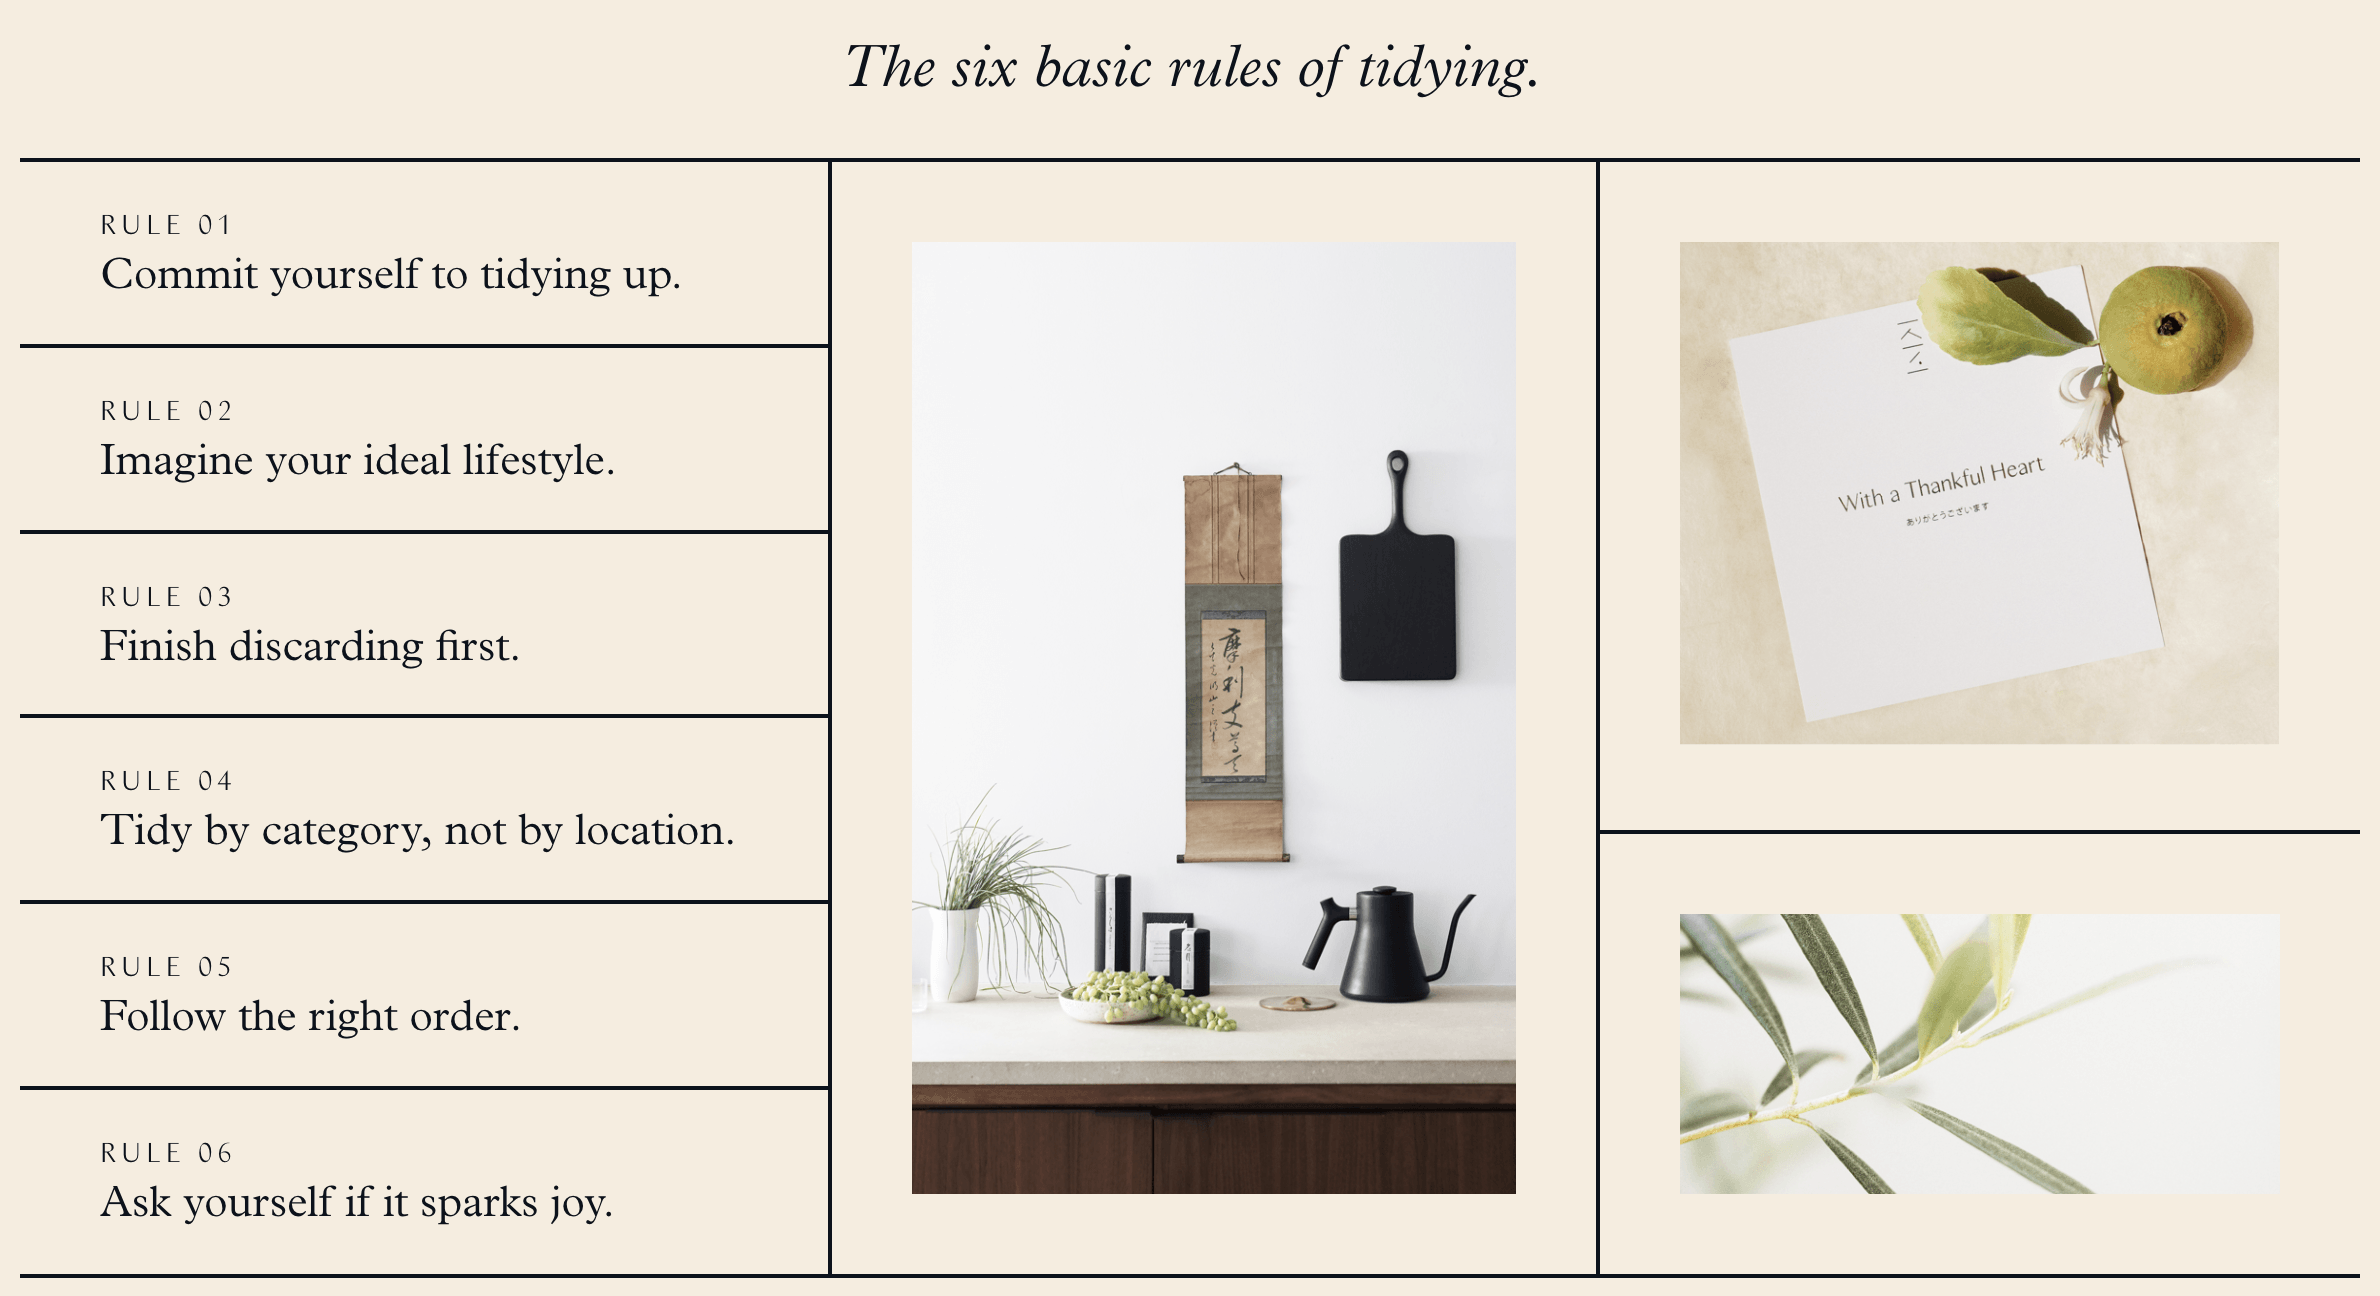 The six basic rules of tidying up